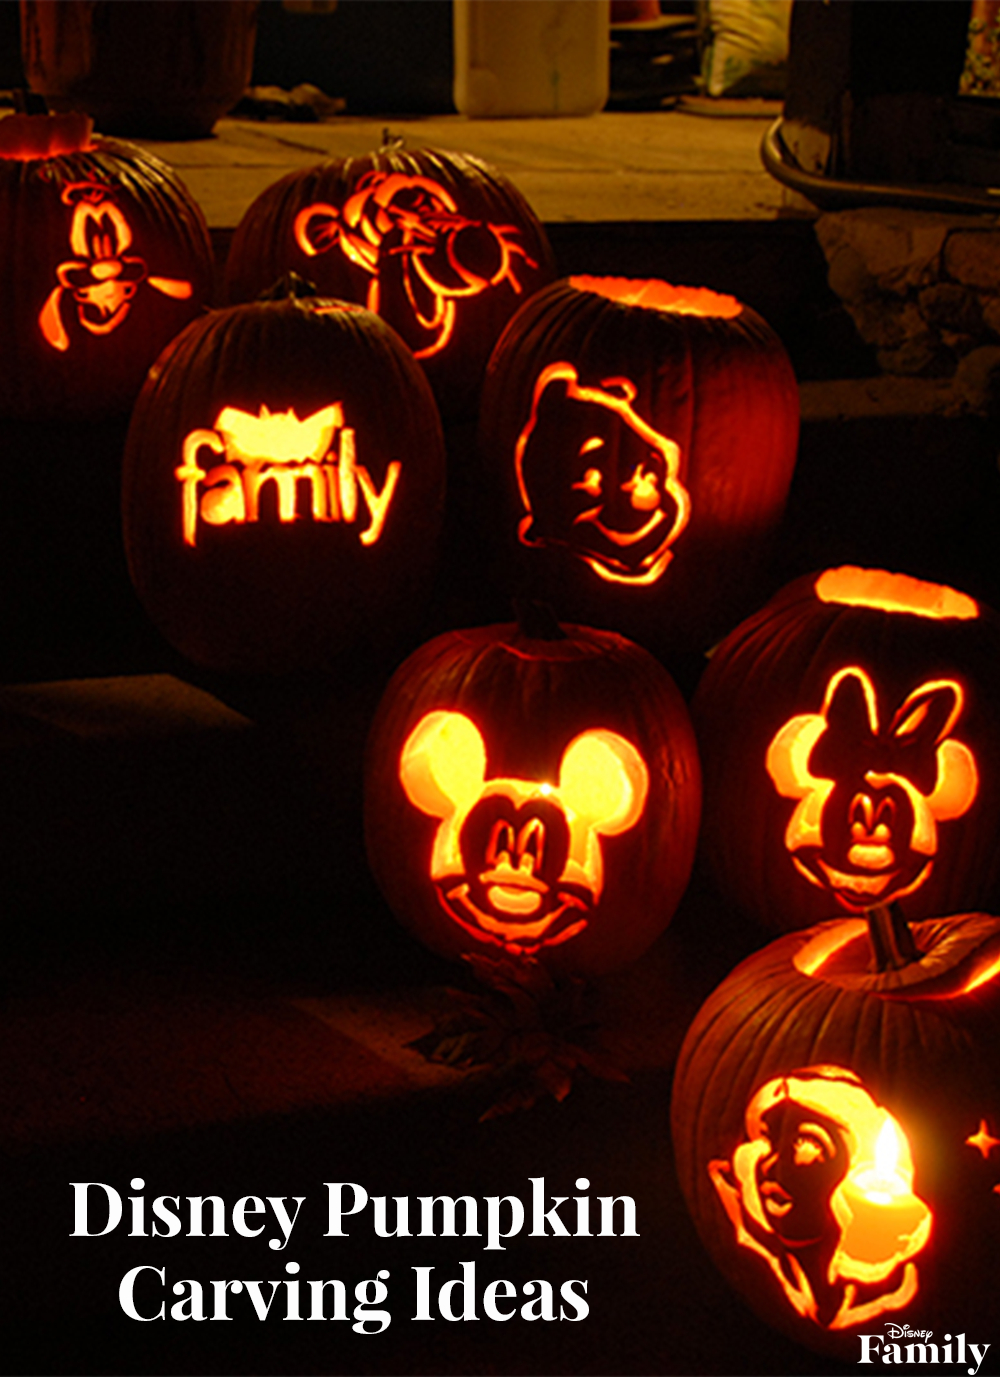 Easy Disney Pumpkin Carving Templates Ideas 2018 | Pumpkin Carving Ideas - Free Printable Toy Story Pumpkin Carving Patterns